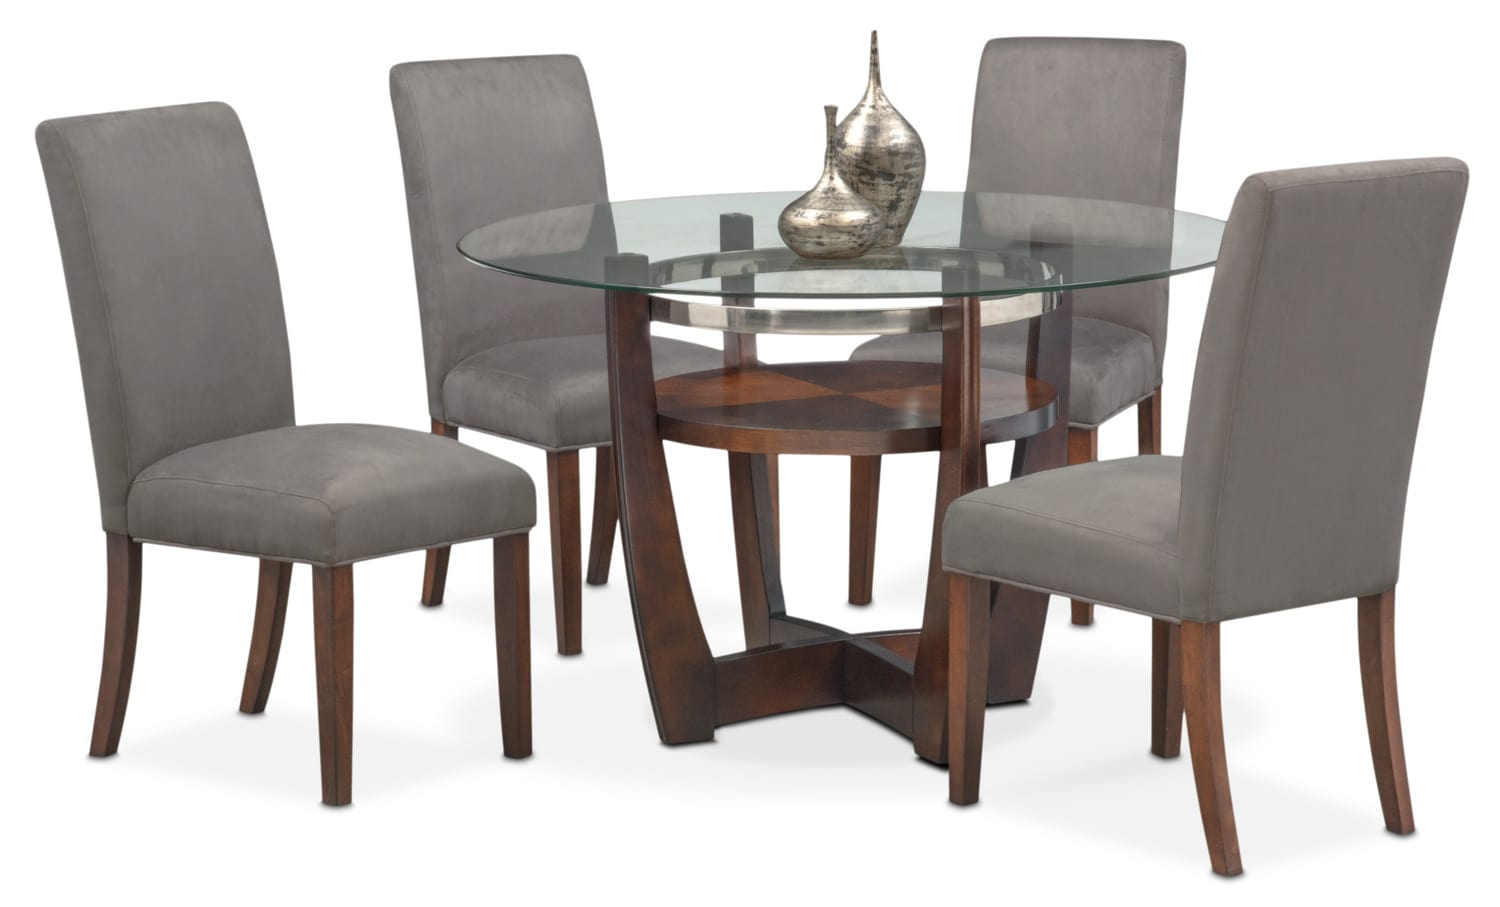 Shop Dining Room Furniture Sale American Signature Furniture